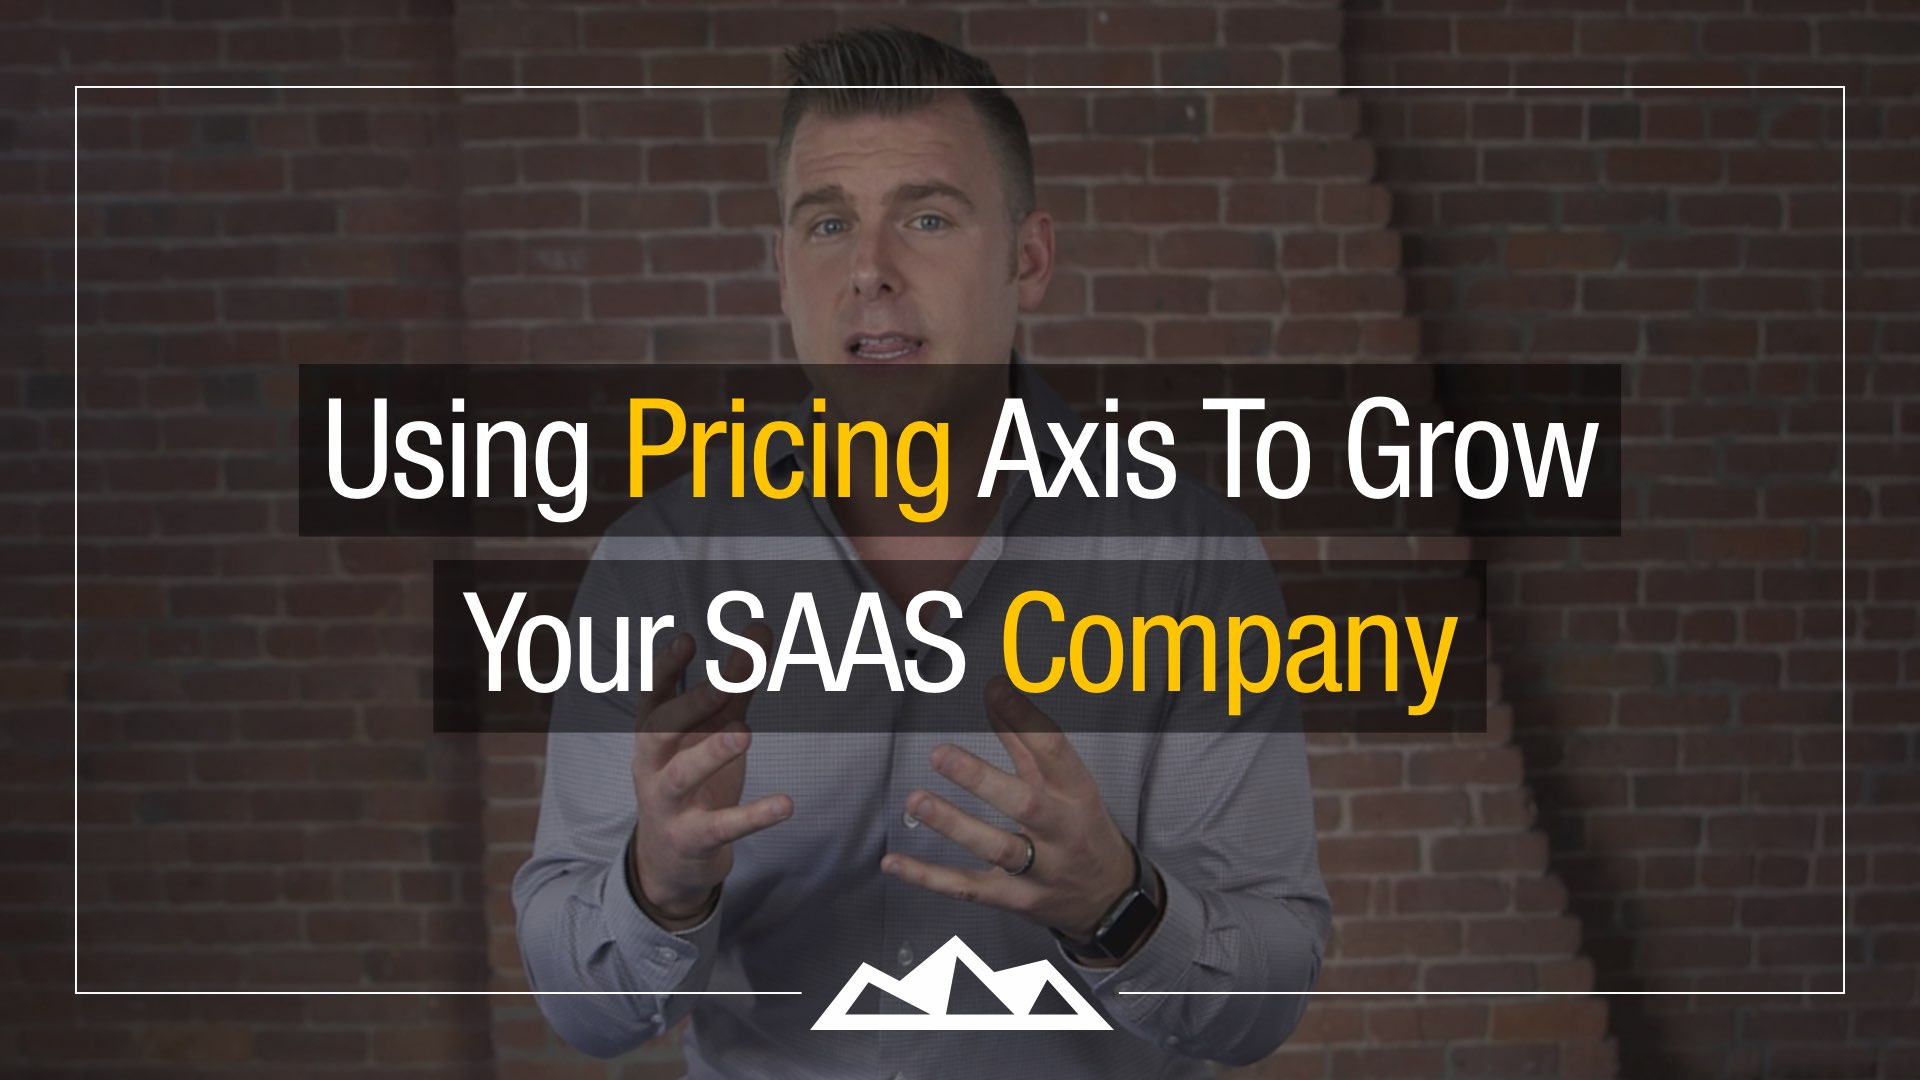 Using Pricing Axis To Grow Your SAAS Company - by Dan Martell